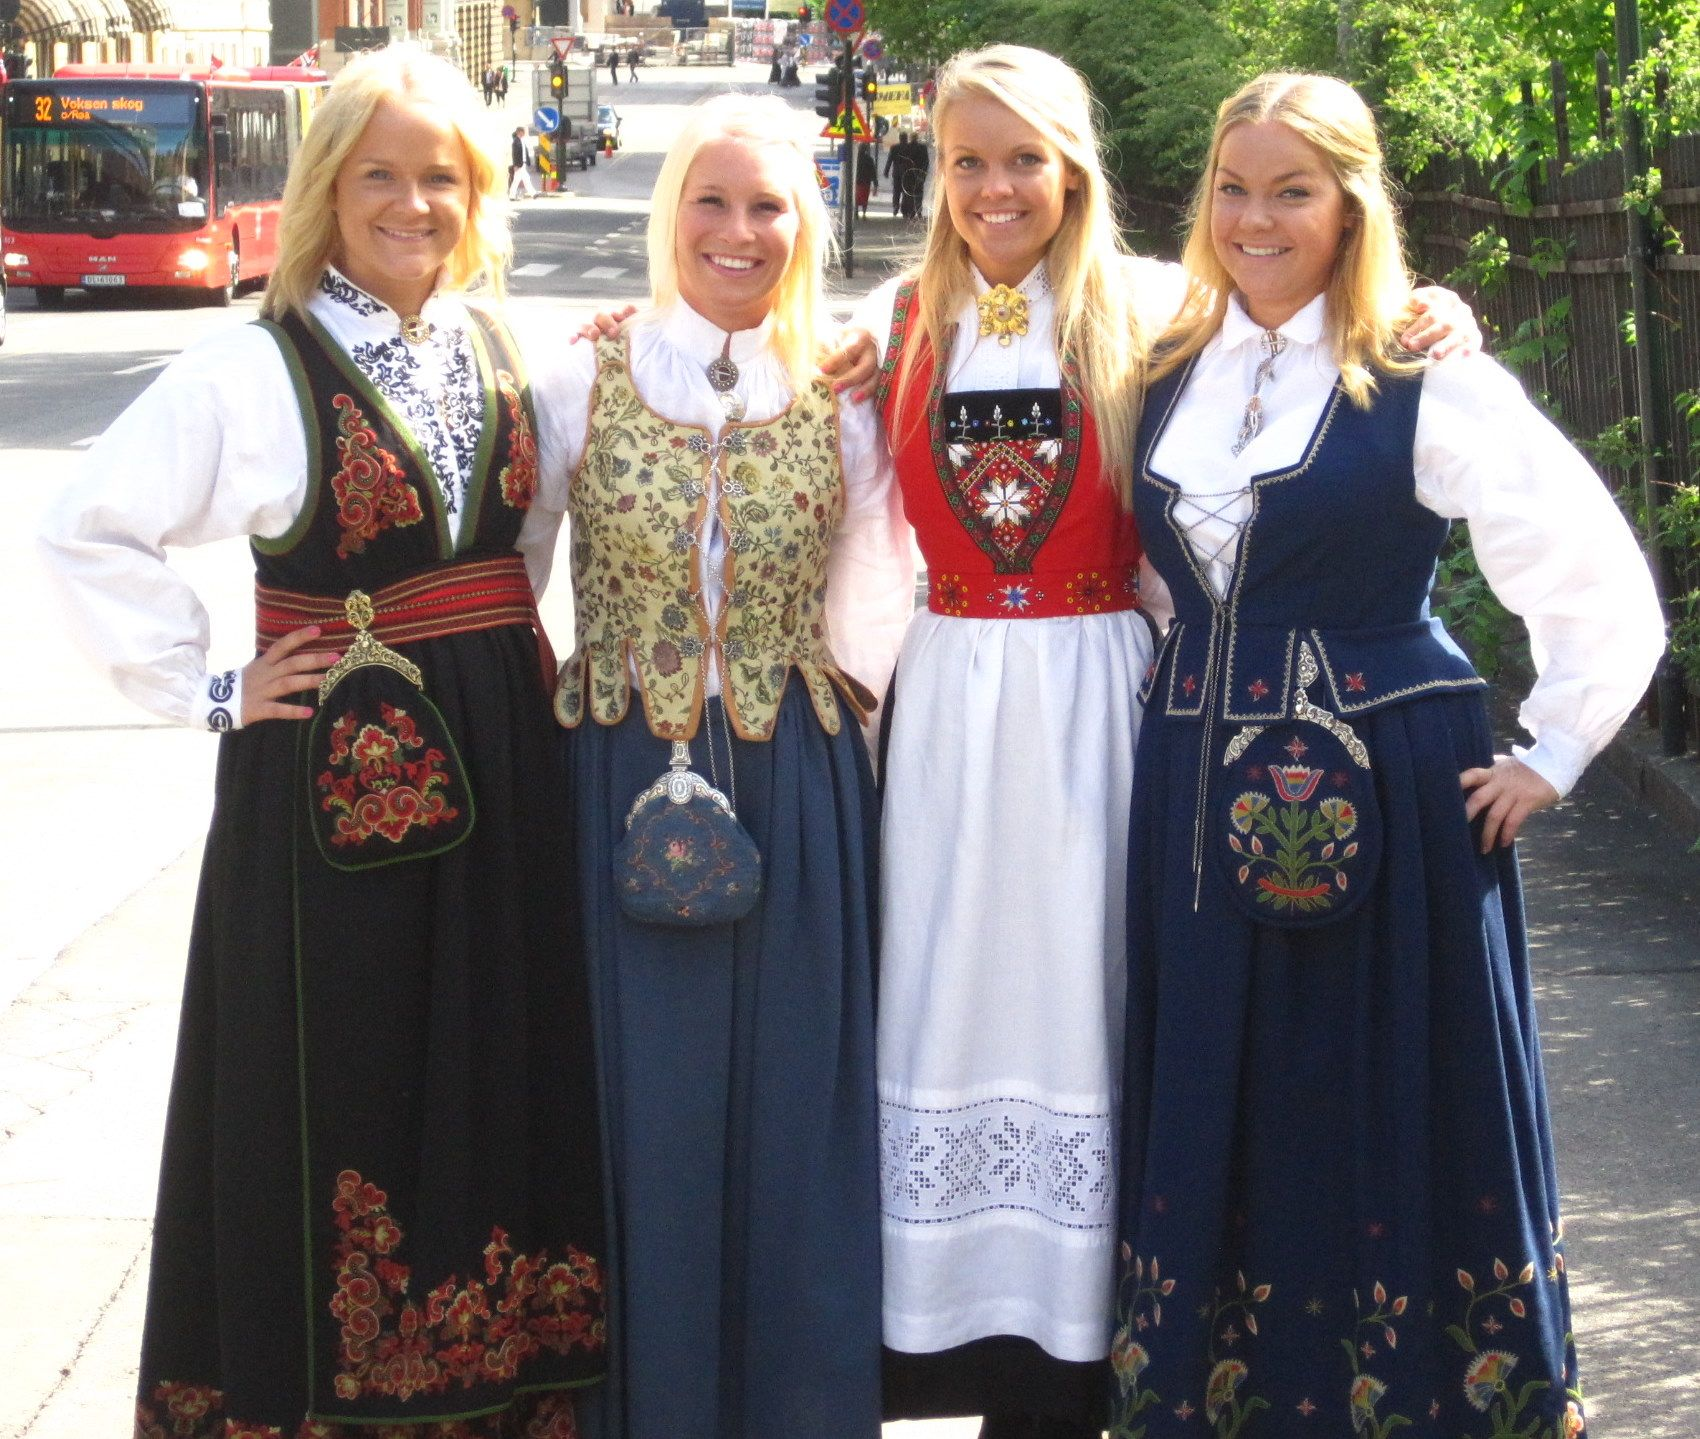 Blonde Norwegian girls in traditional costumes (bunader).